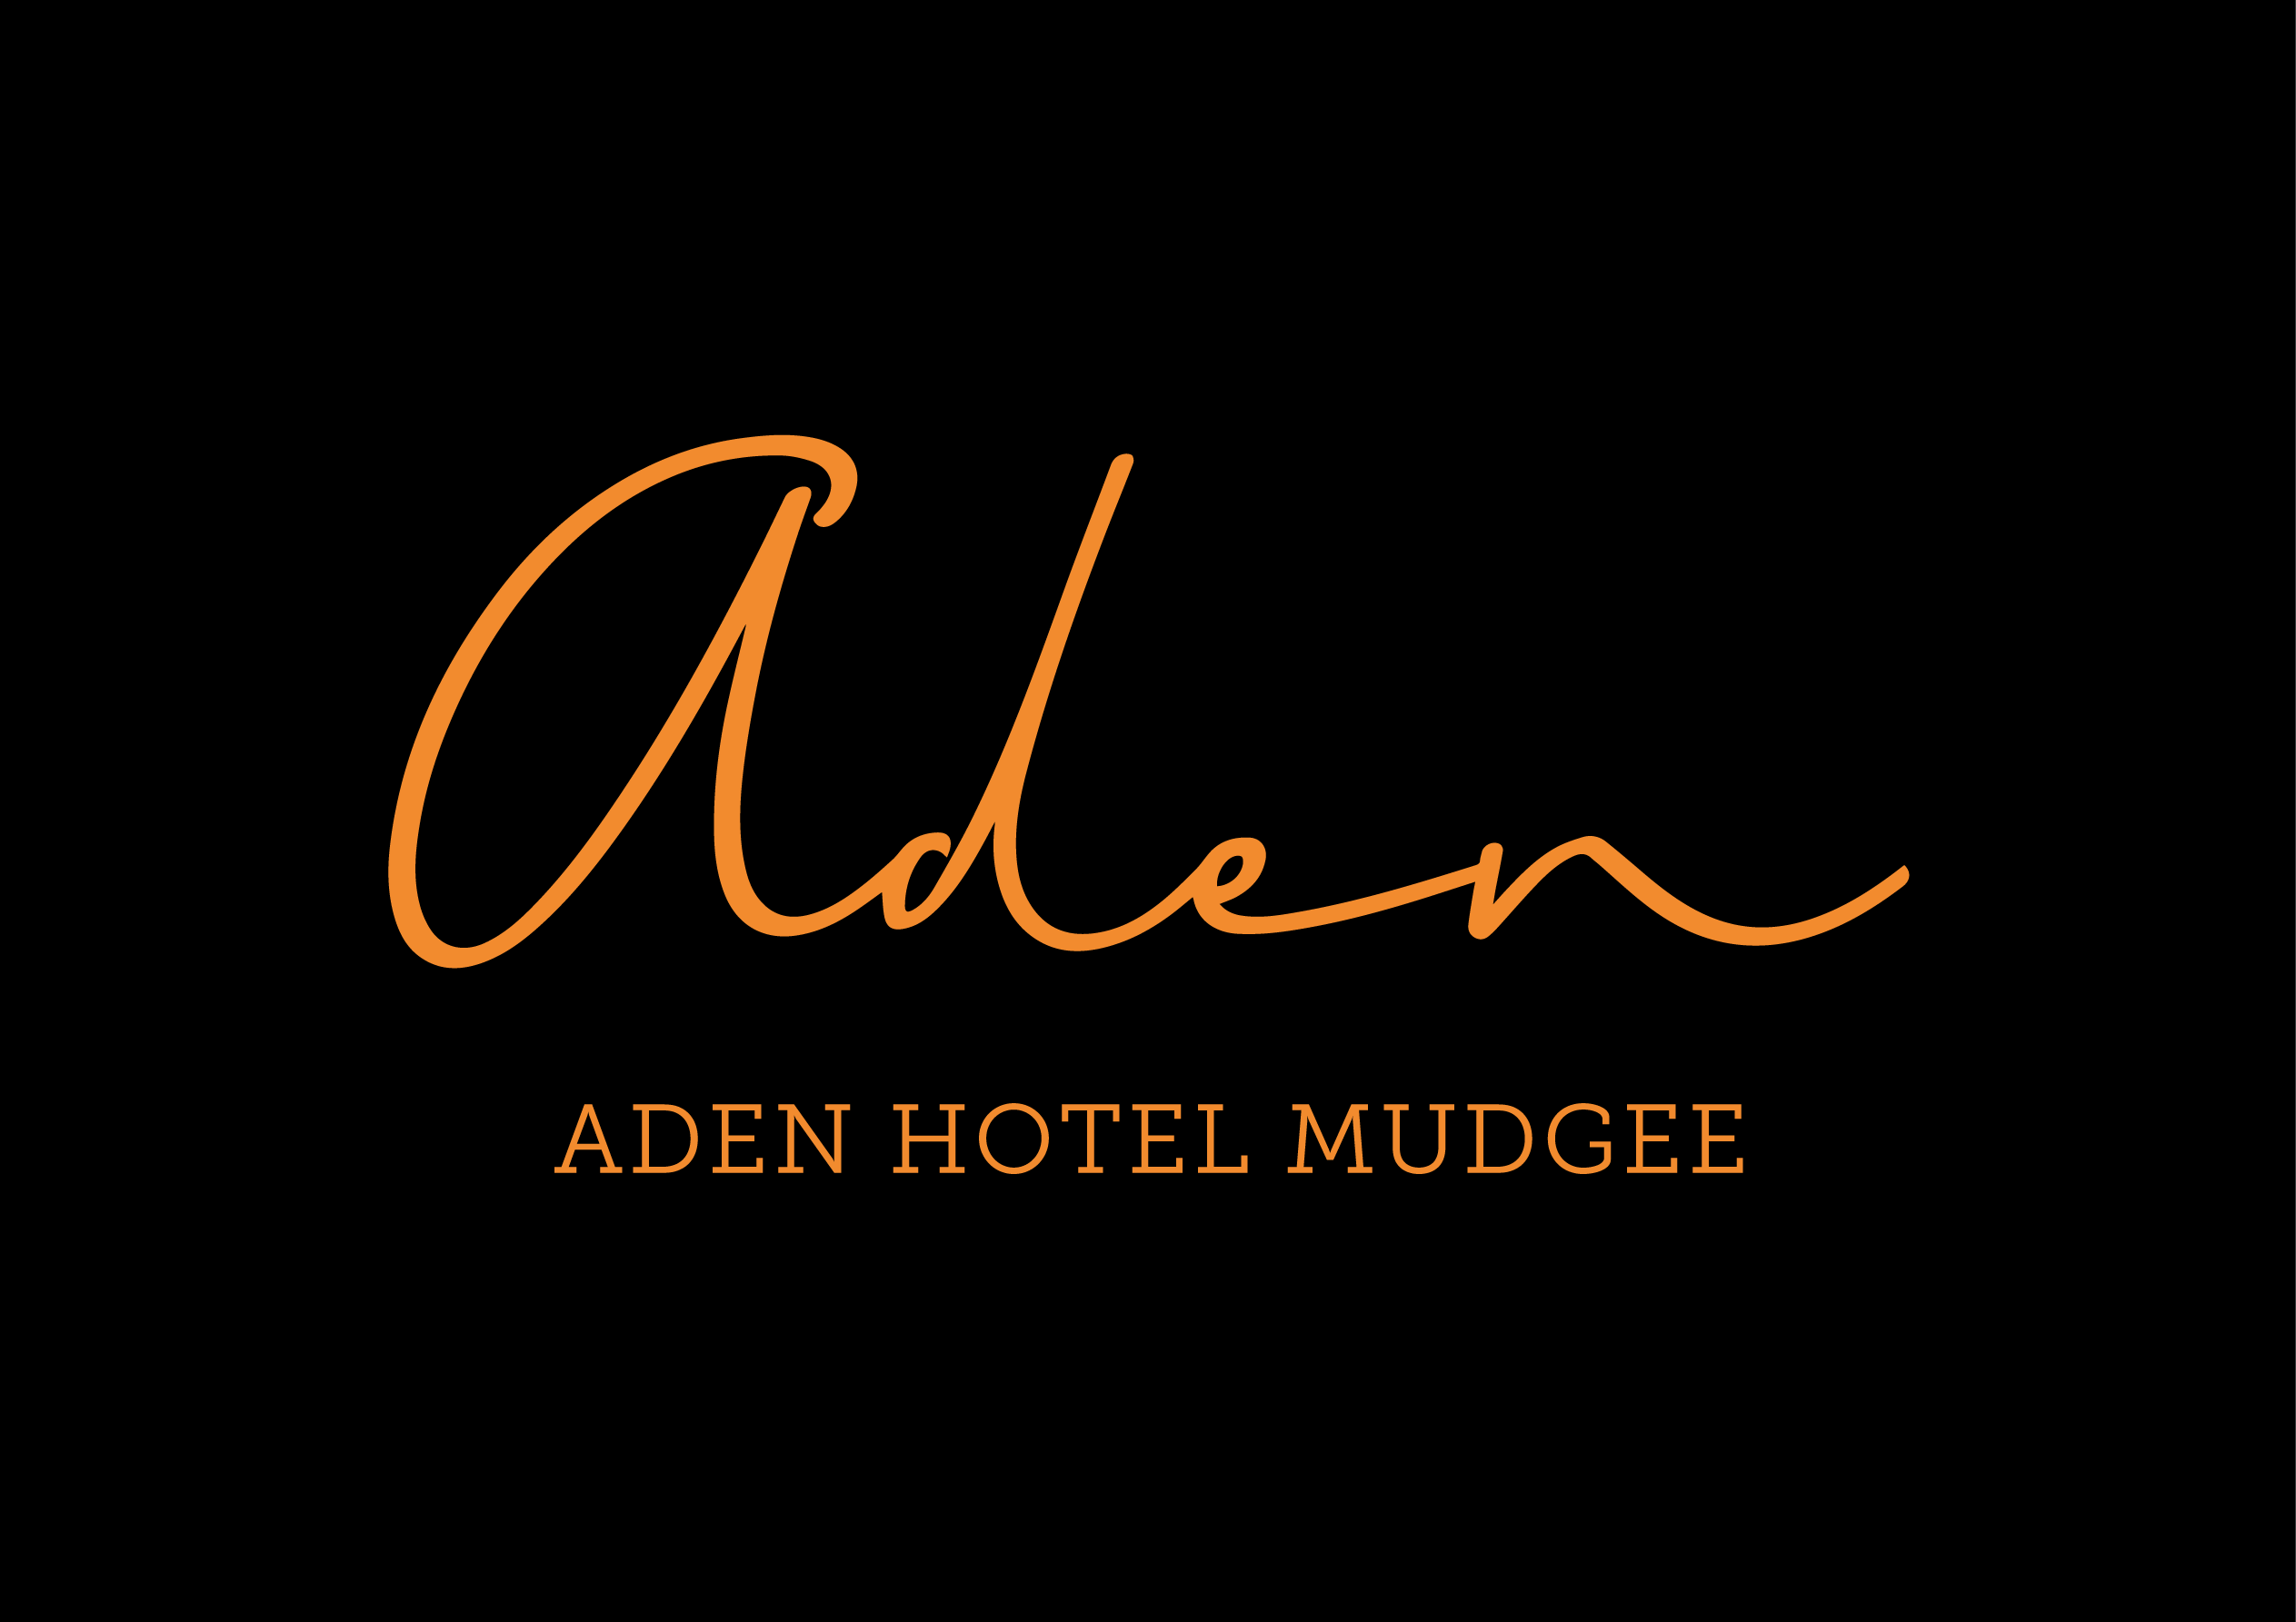 Comfort Inn Aden Hotel Mudgee - Lismore Accommodation